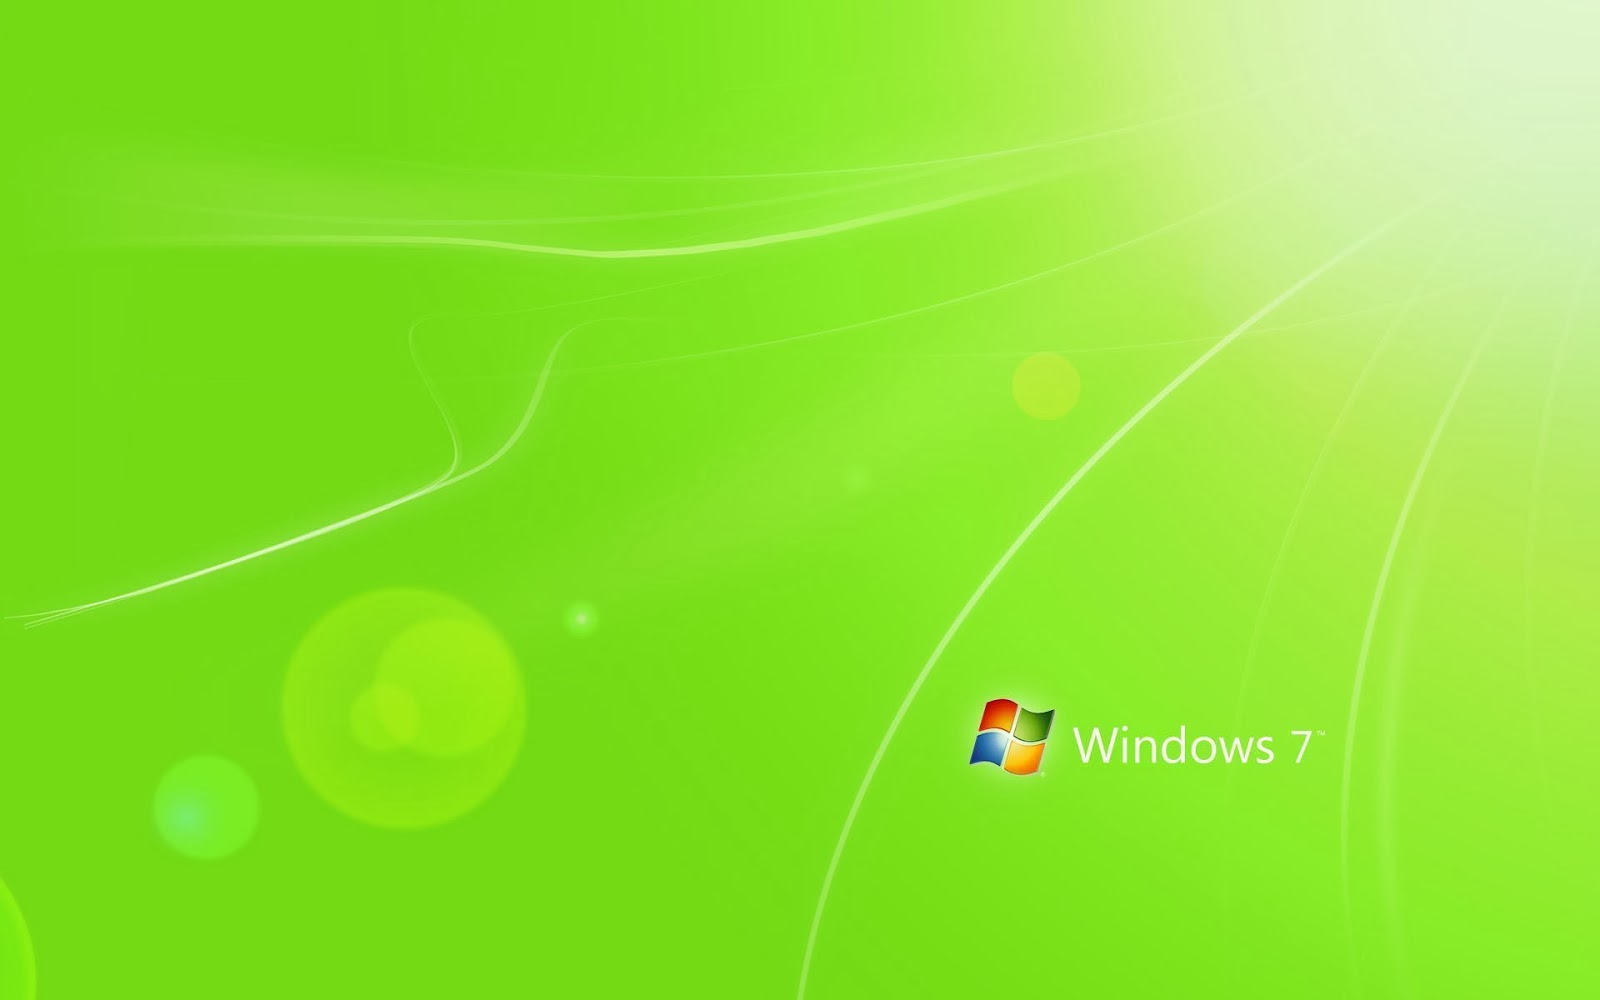 windows 7 defaut wallpaper apps directories